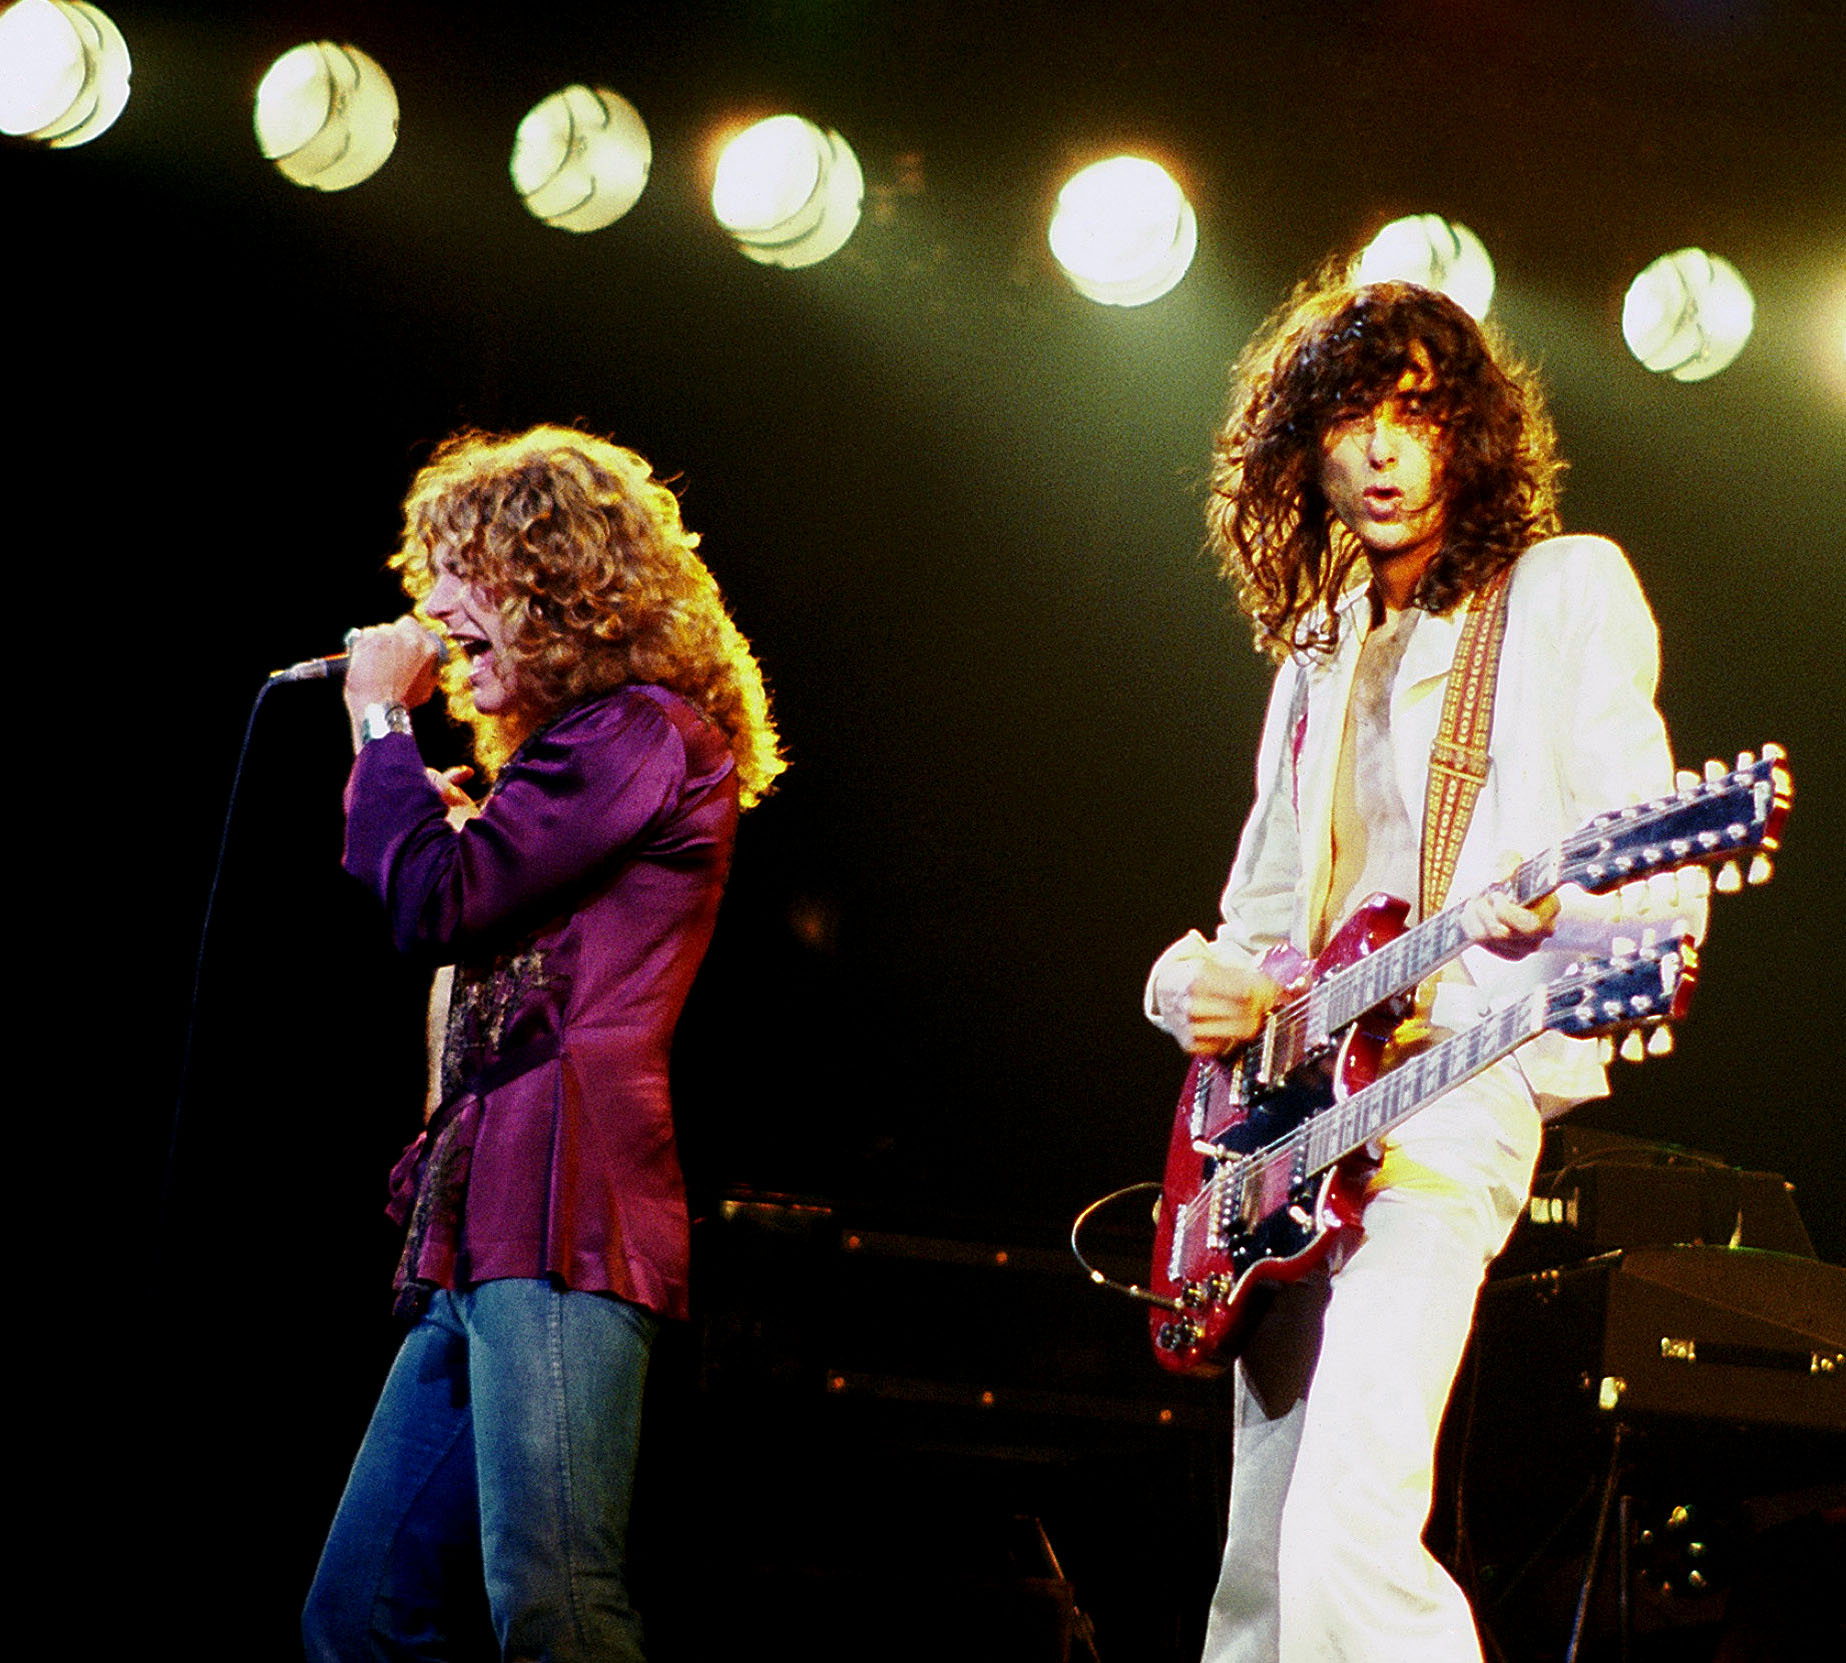 https://upload.wikimedia.org/wikipedia/commons/d/d3/Jimmy_Page_with_Robert_Plant_2_-_Led_Zeppelin_-_1977.jpg